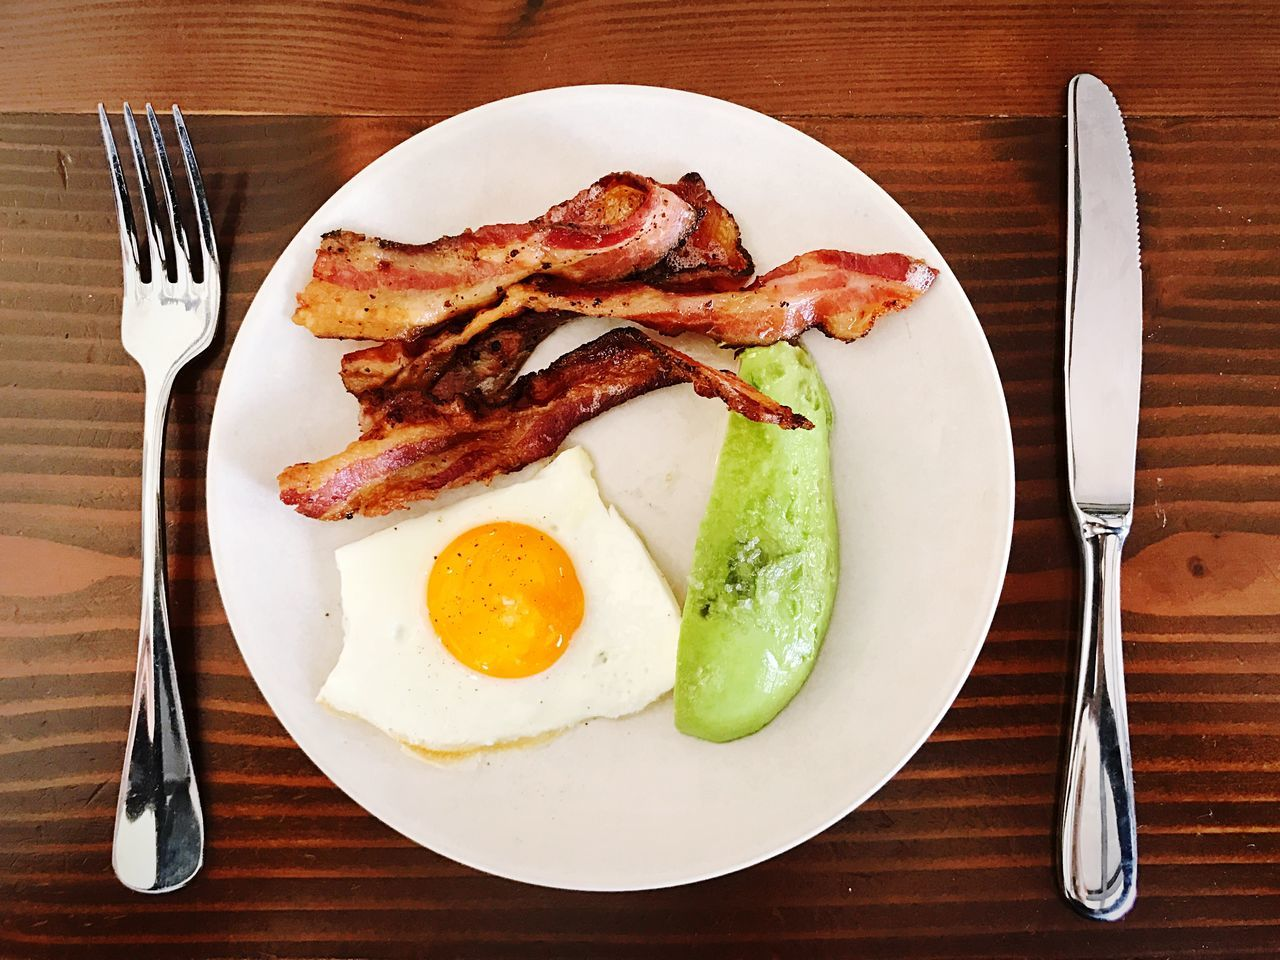 Ketogenic Keto KetogenicDiet Breakfast // Plate Fork Food And Drink Breakfast Fried Egg Fried English Breakfast Food Table Freshness Bacon Healthy Eating Indoors  No People Close-up Sausage Ready-to-eat Day Bacon! Bacon And Eggs